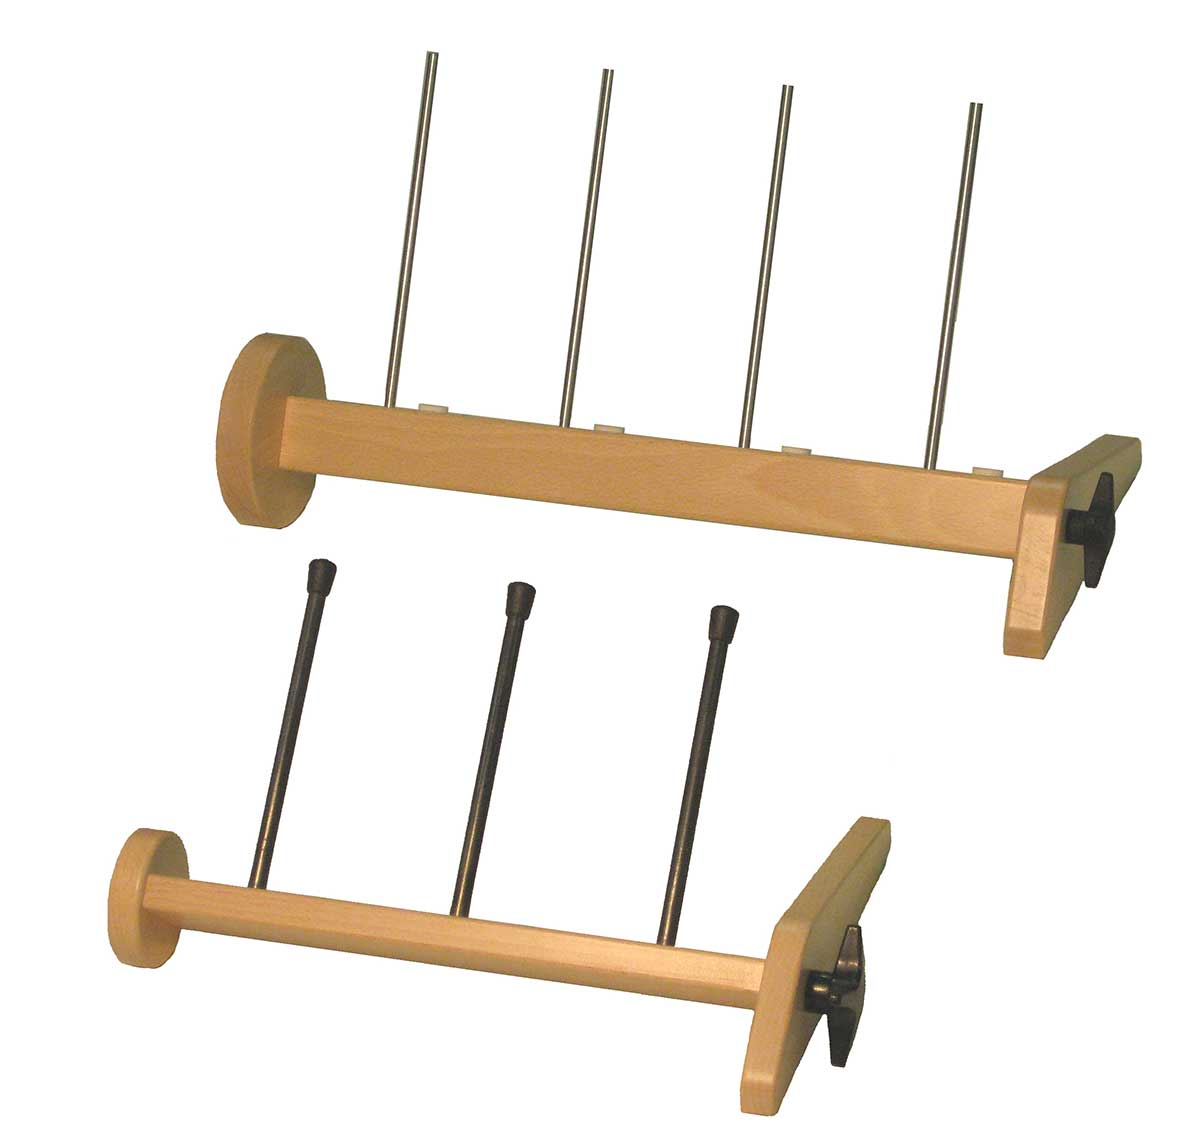 Louet Stand-alone Lazy Kate Racks for Plying yarn and holding bobbins